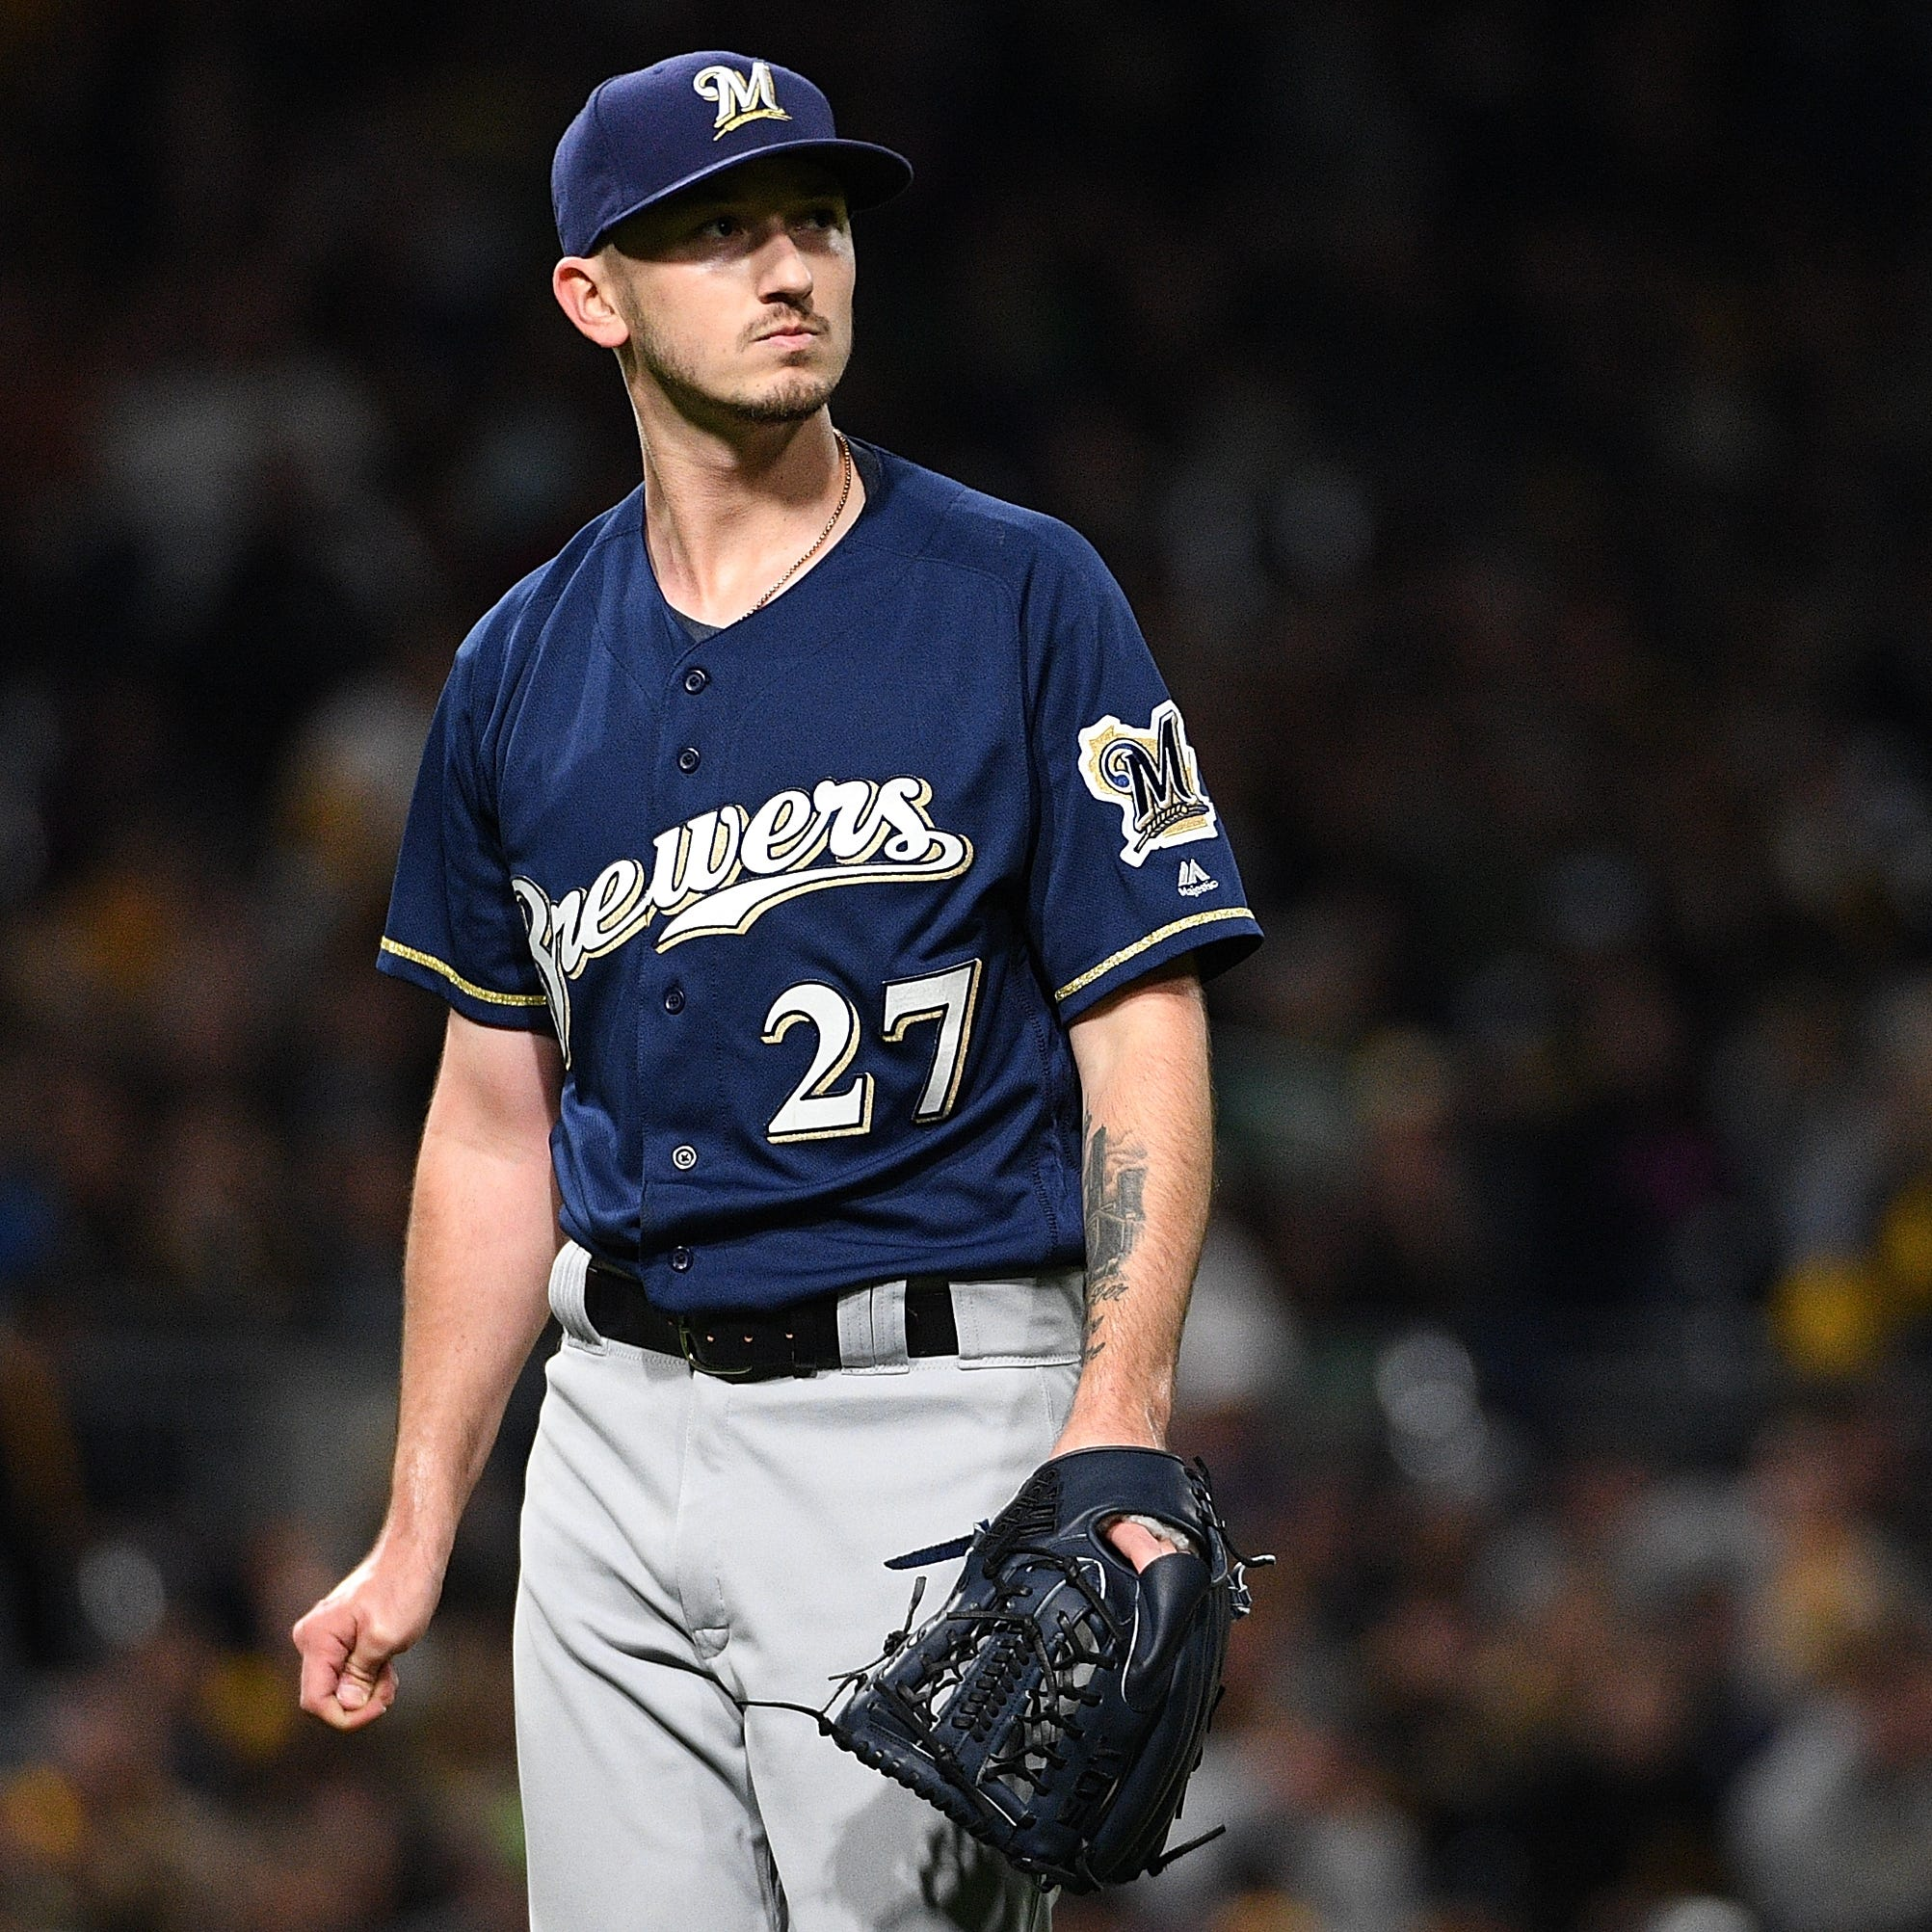 Zach Davies replaces injured Gio Gonzalez on Brewers' NLCS roster